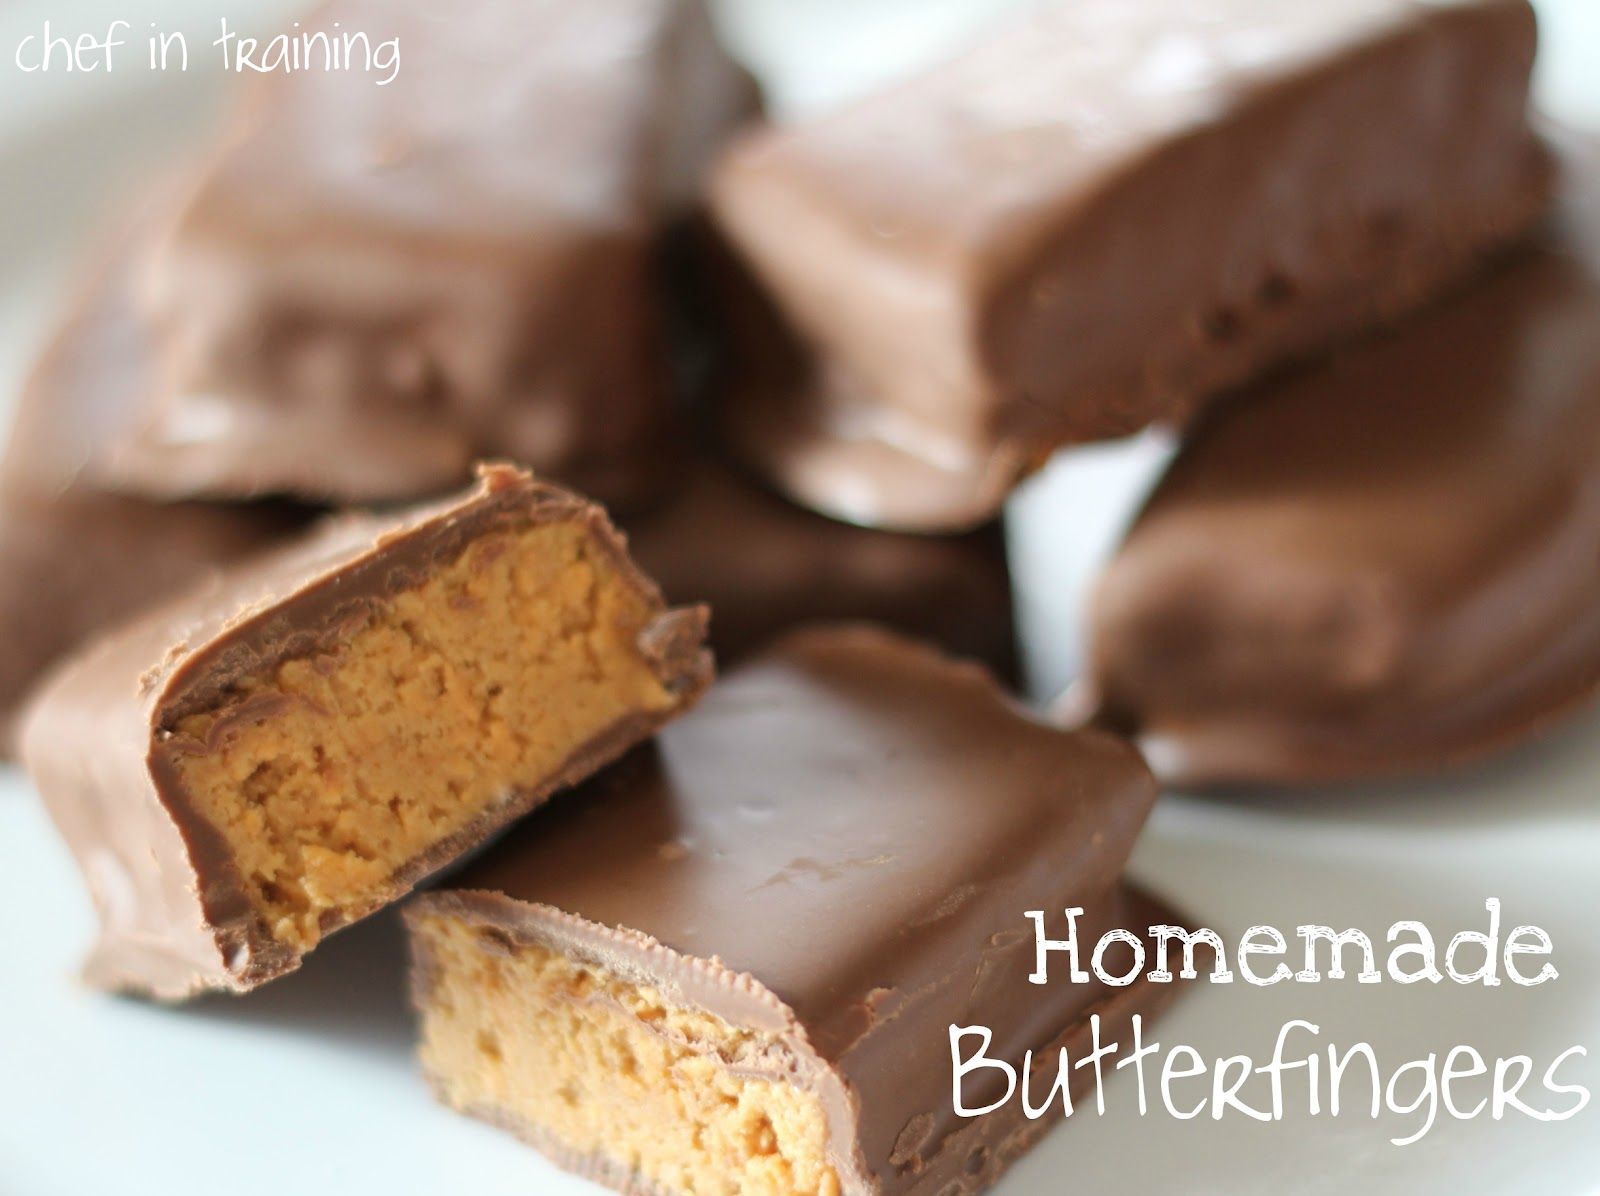 Homemade Butterfingers - Chef in Training